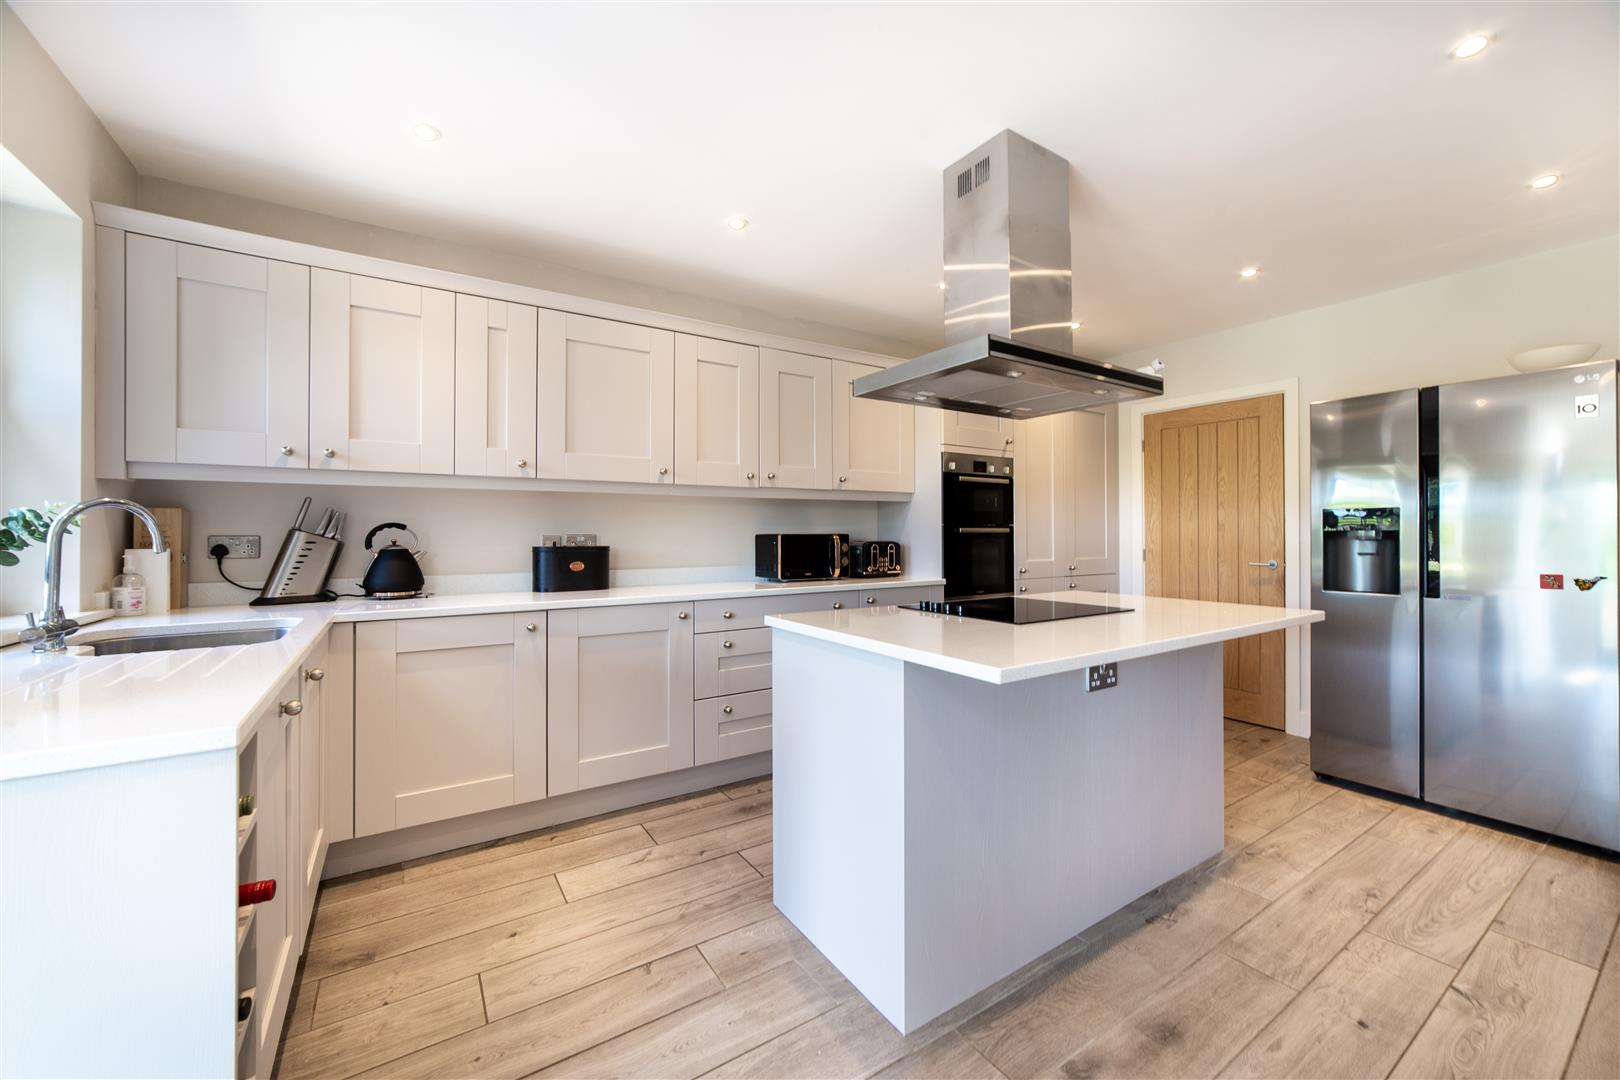 4 bed detached house for sale, Hexham 19